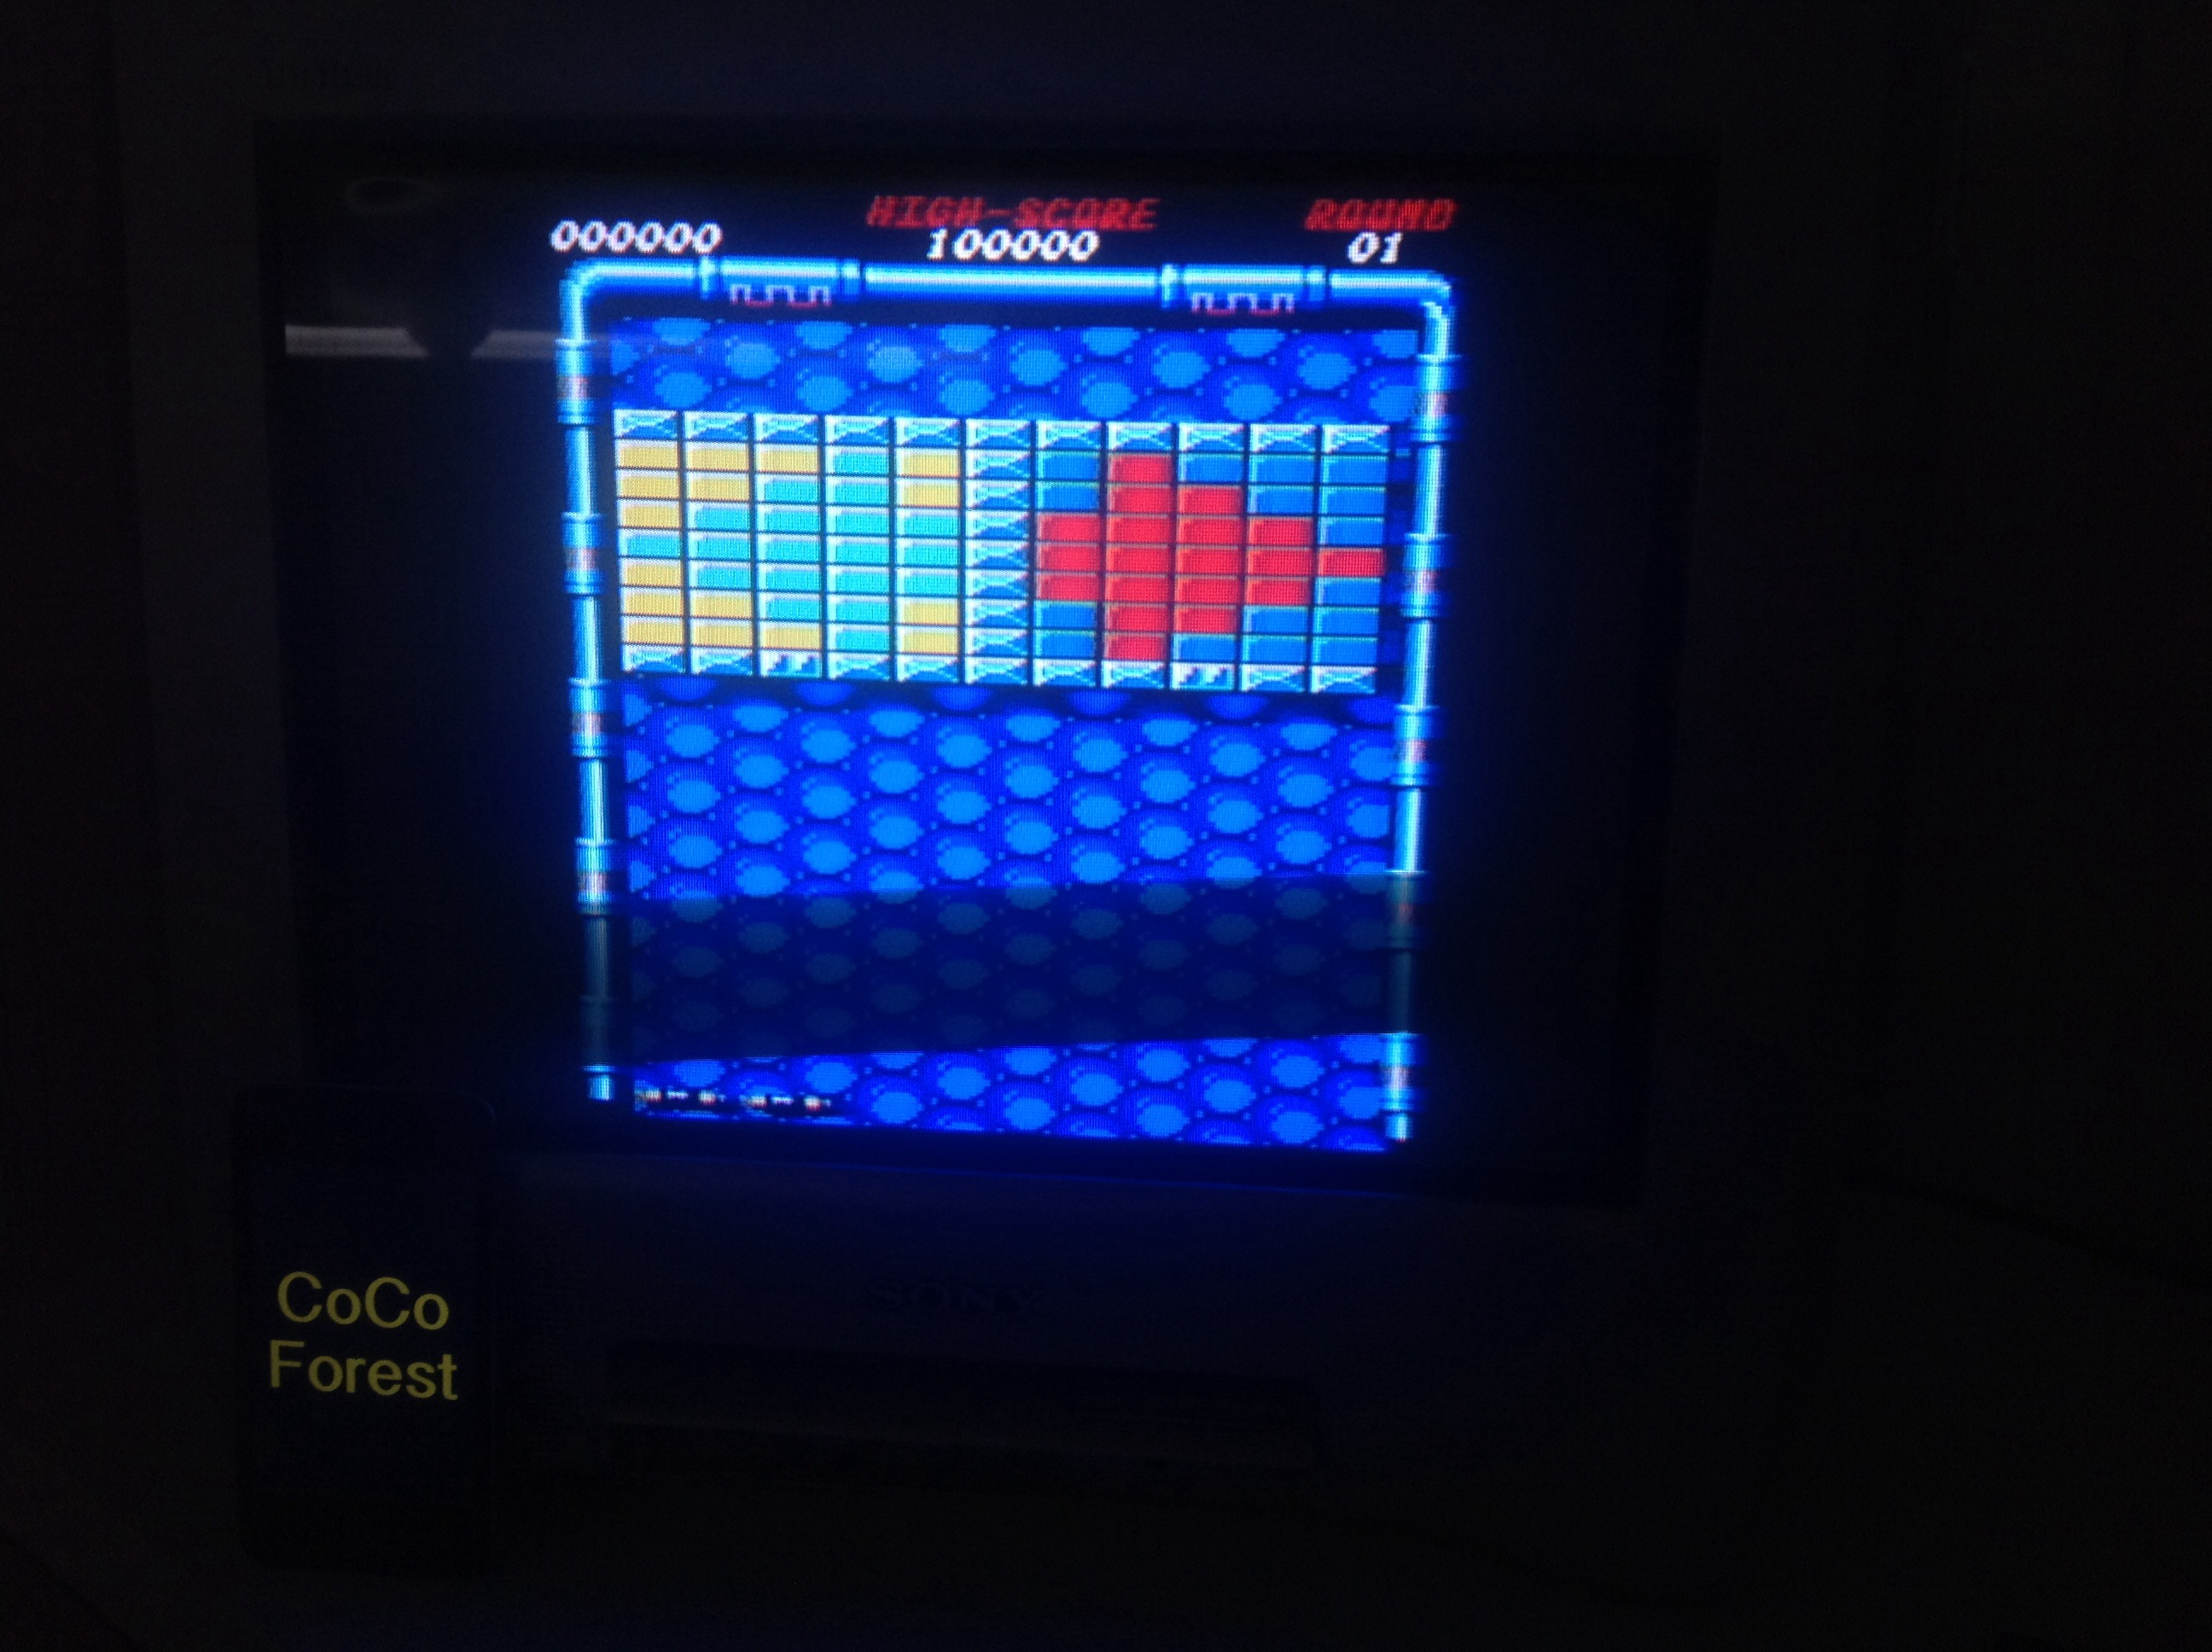 CoCoForest: Arkanoid: Revenge of Doh (Amstrad CPC) 66,840 points on 2015-05-07 04:45:10